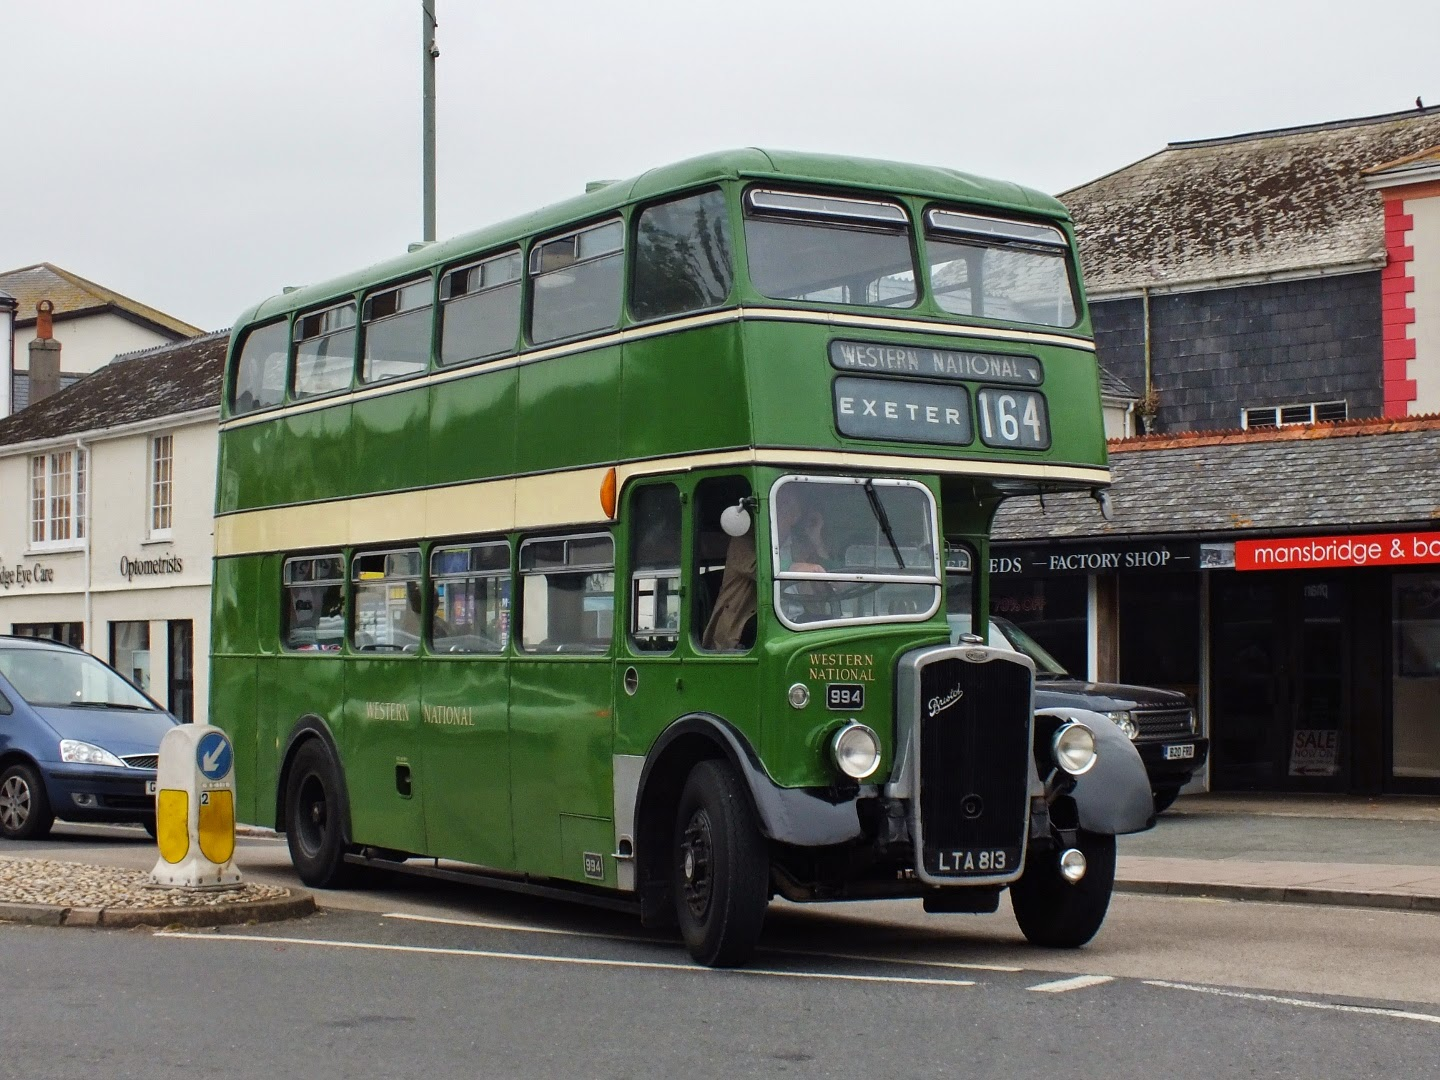 medium resolution of my final run of the day was on roger burdett s excellent western national 994 lta 813 a 1950 ks5g showing how with the longer length ecw also tidied up